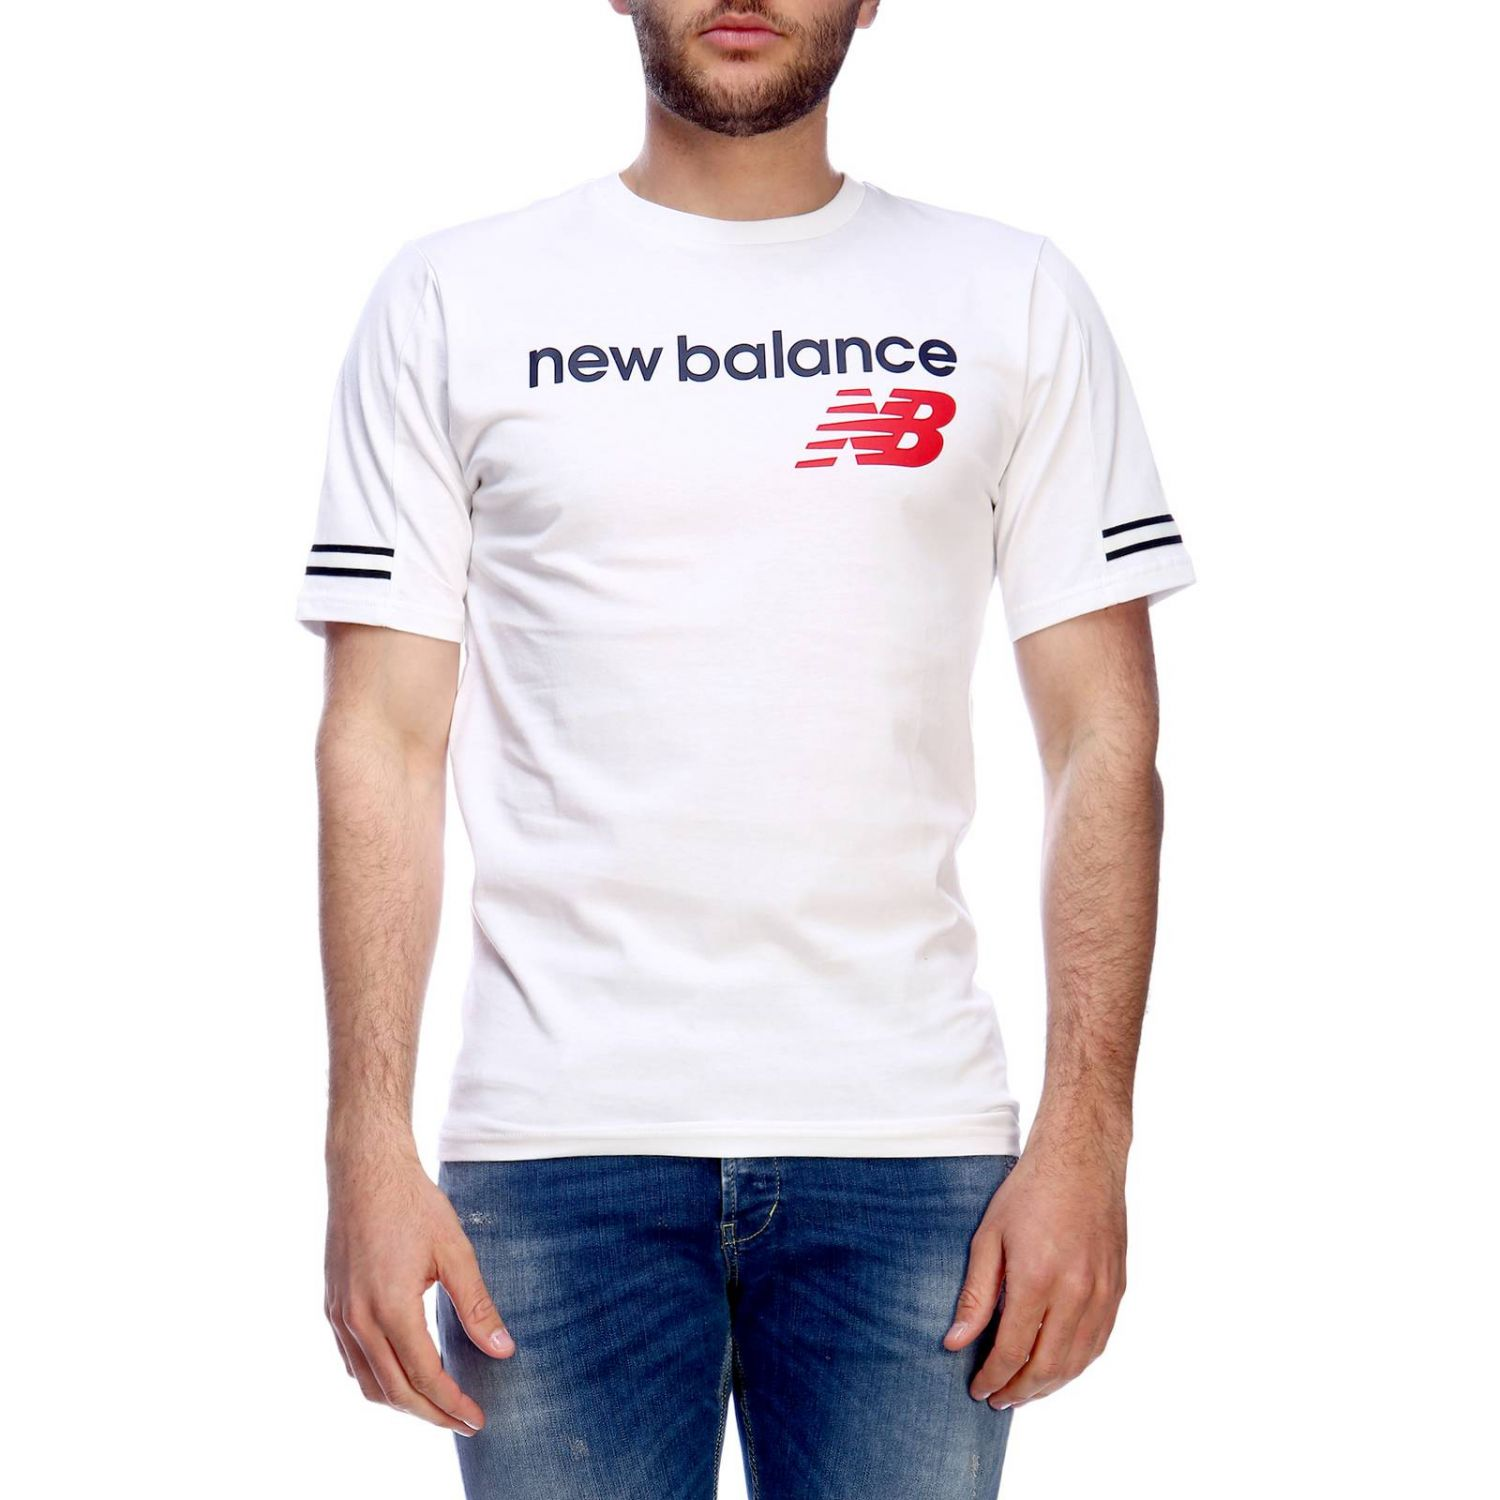 new balance shirt homme